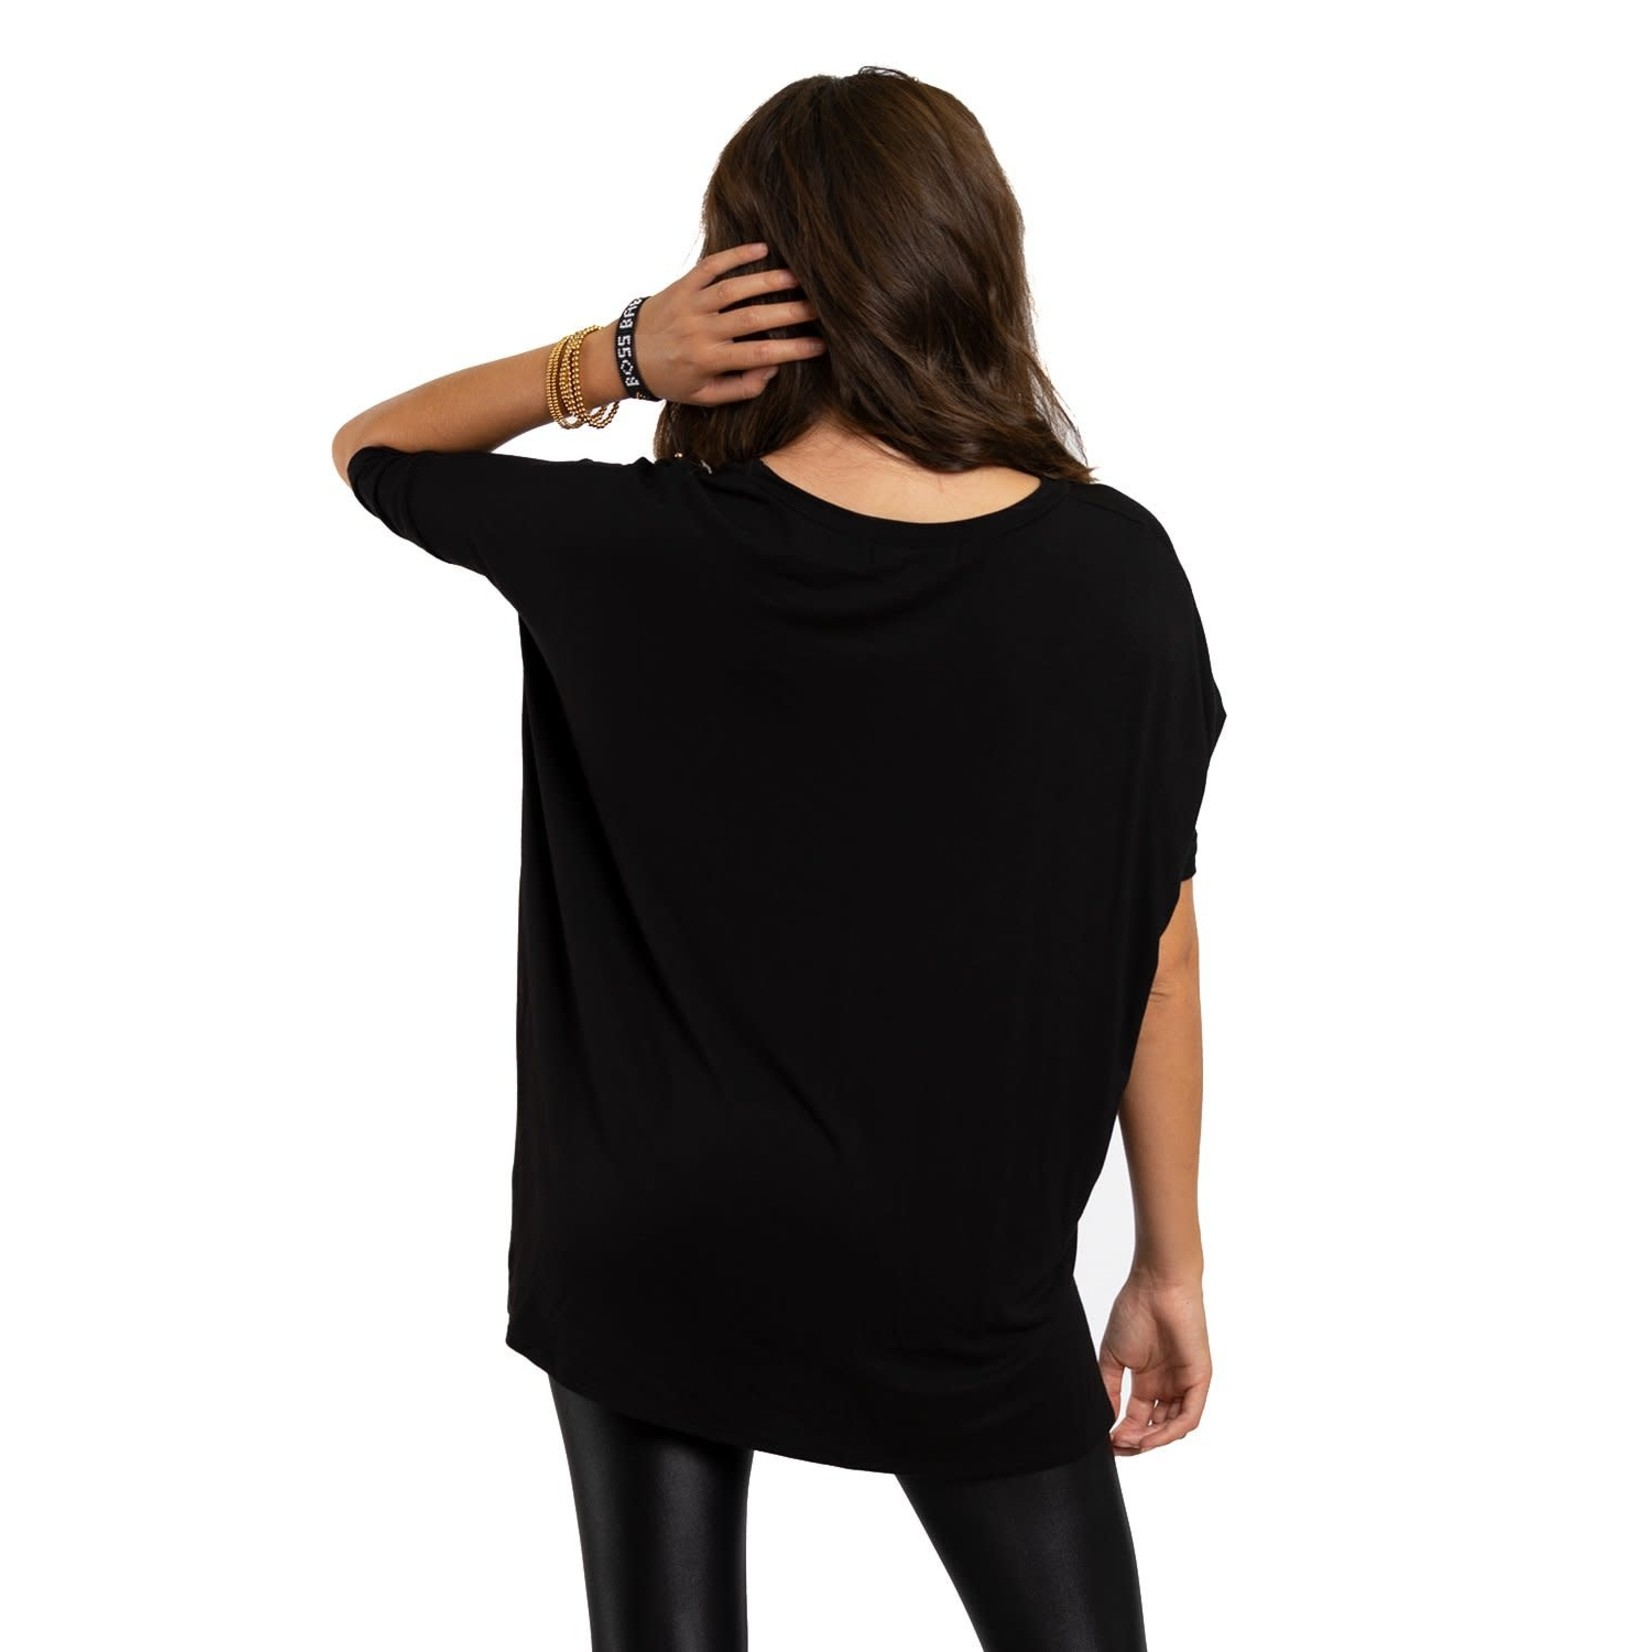 Los Angeles Trading Co Boss Babe One Size Tee in Black